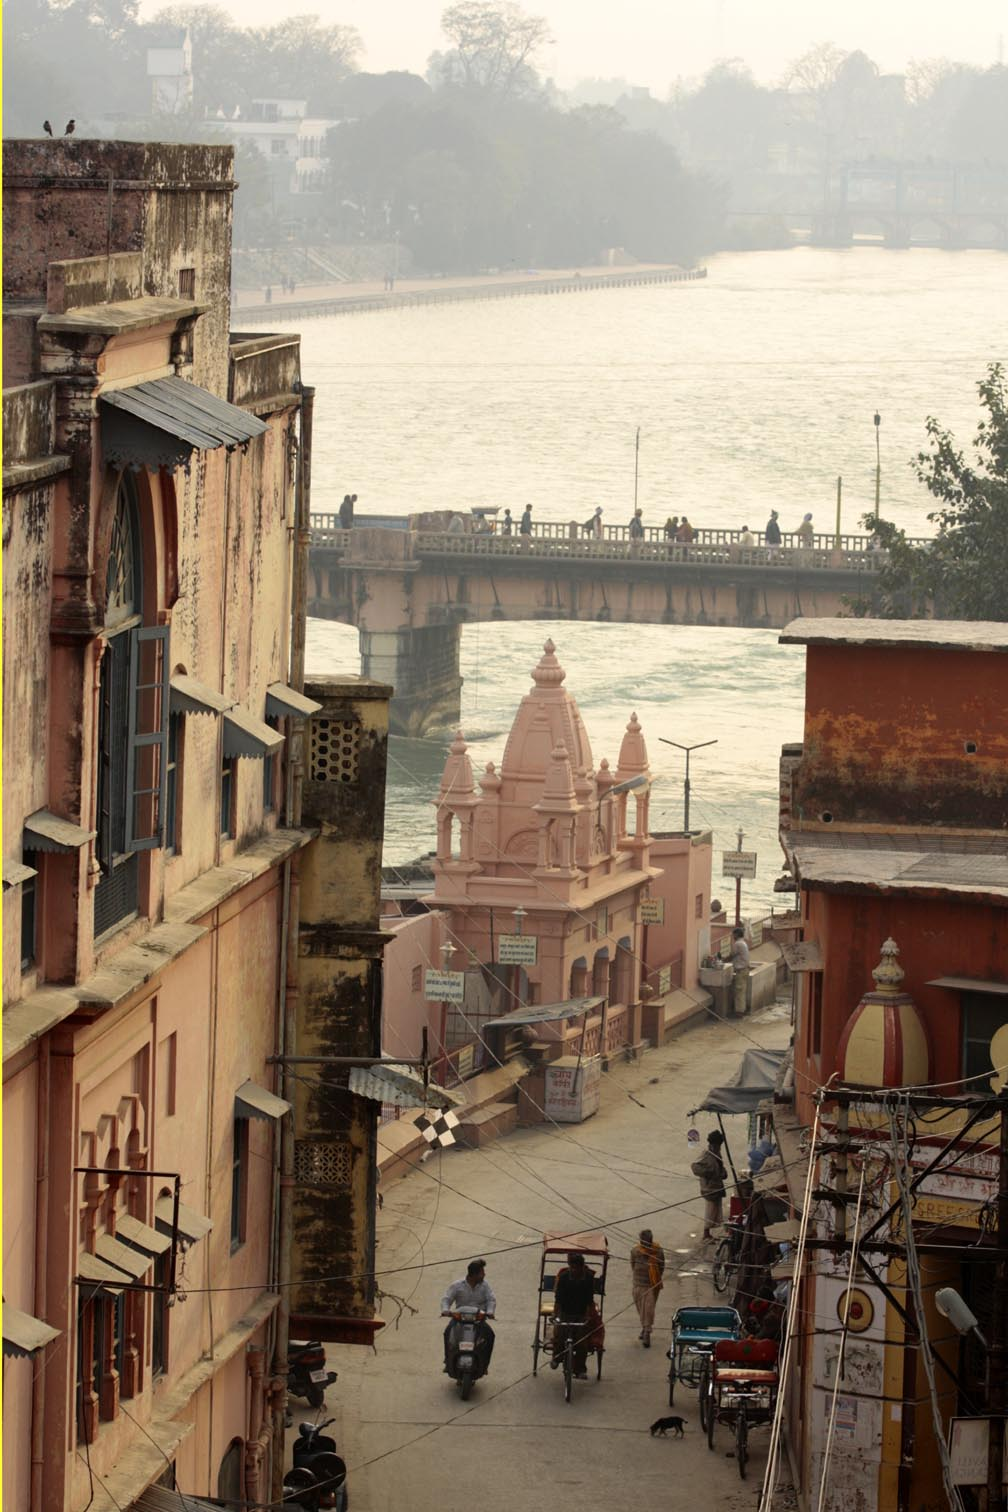 Buildings line a cobblestone street. The bridge that crosses the ganges is in the distance with the river continuing into the distance.